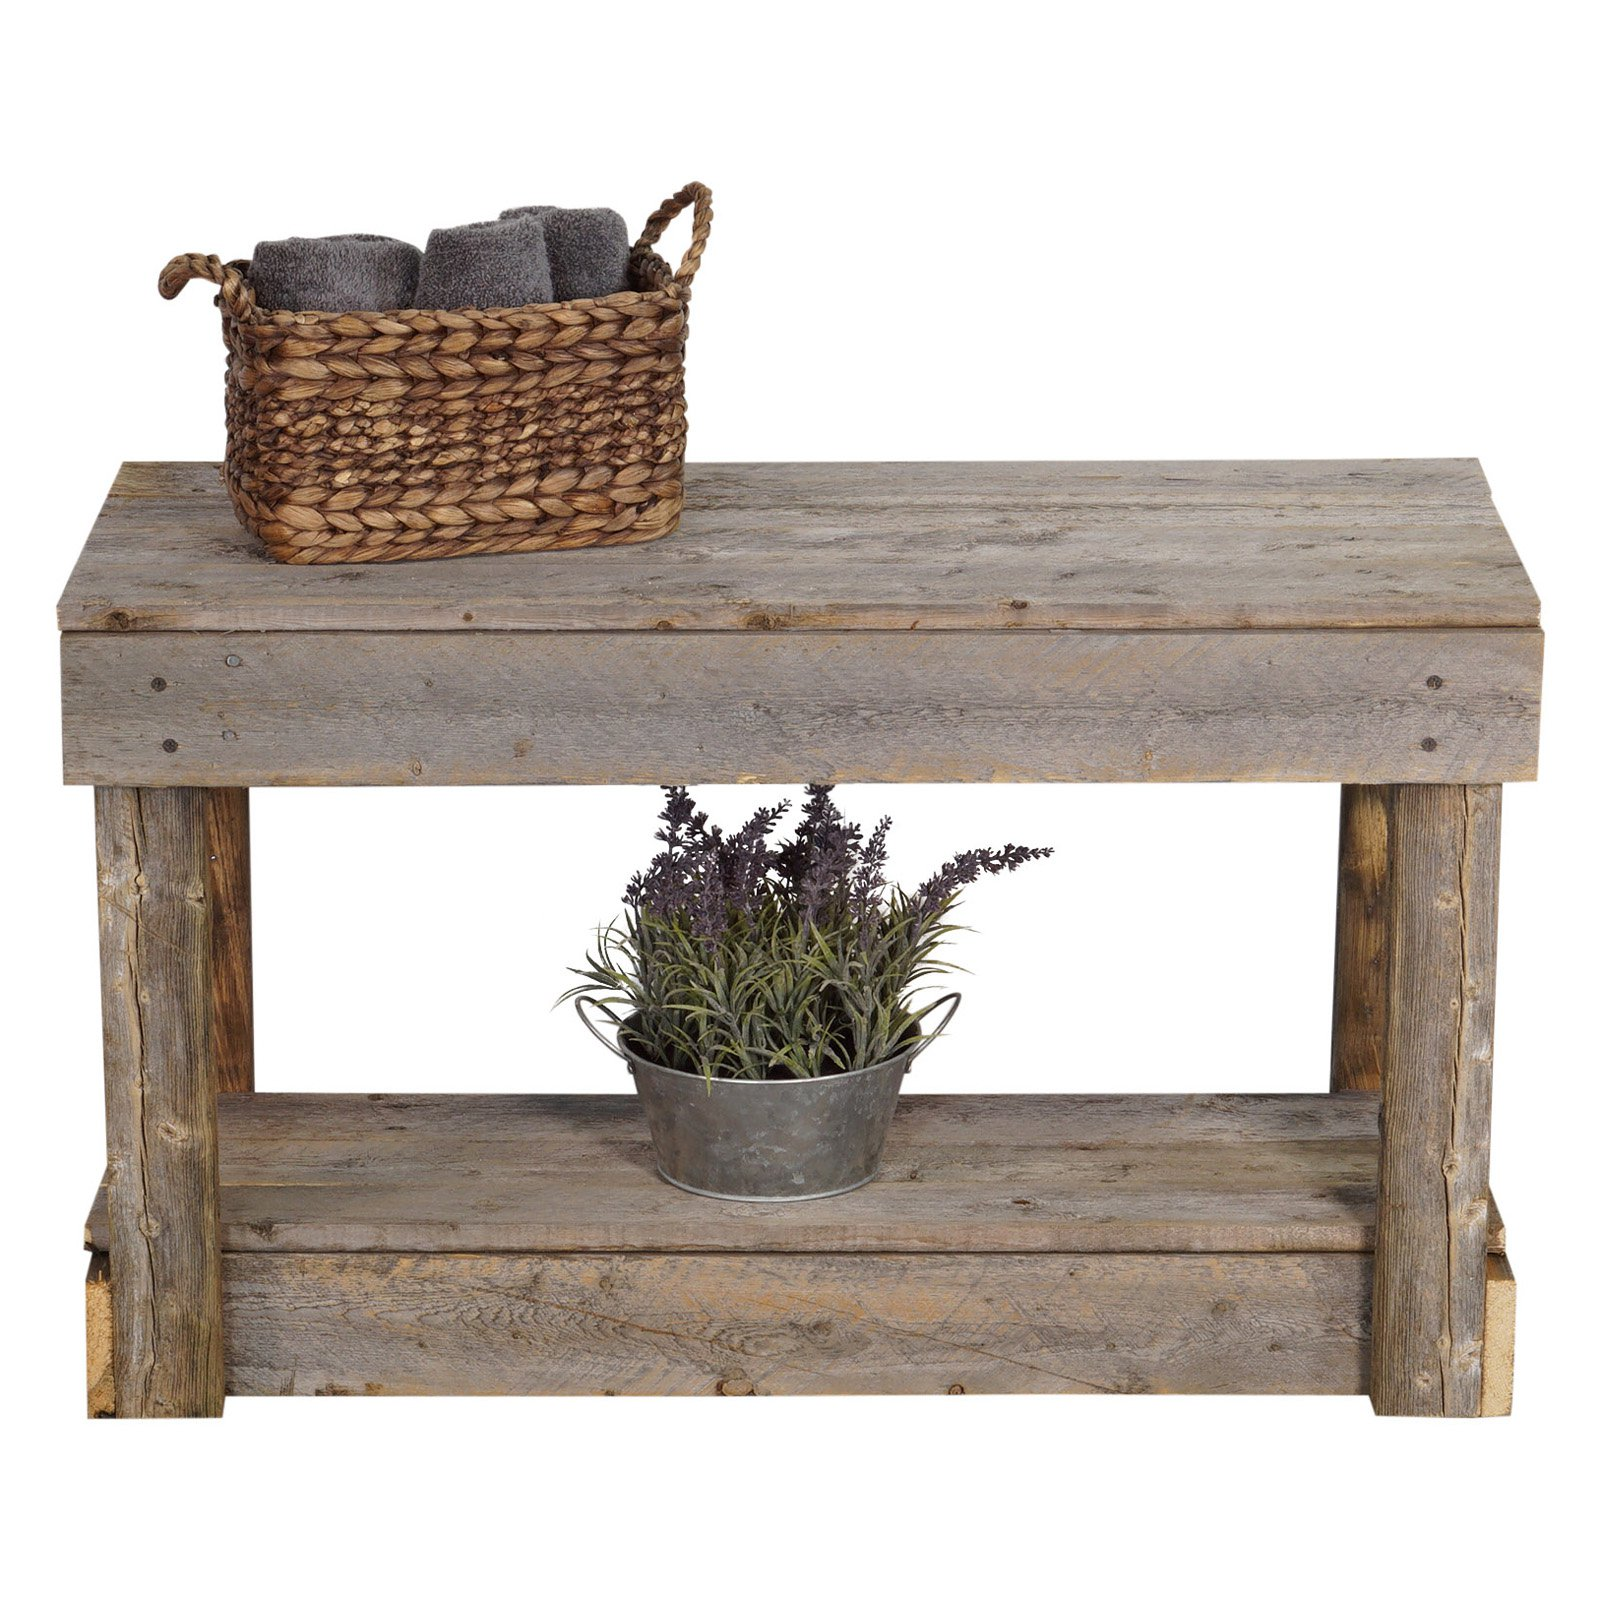 Del Hutson Reclaimed Wood Entry Bench